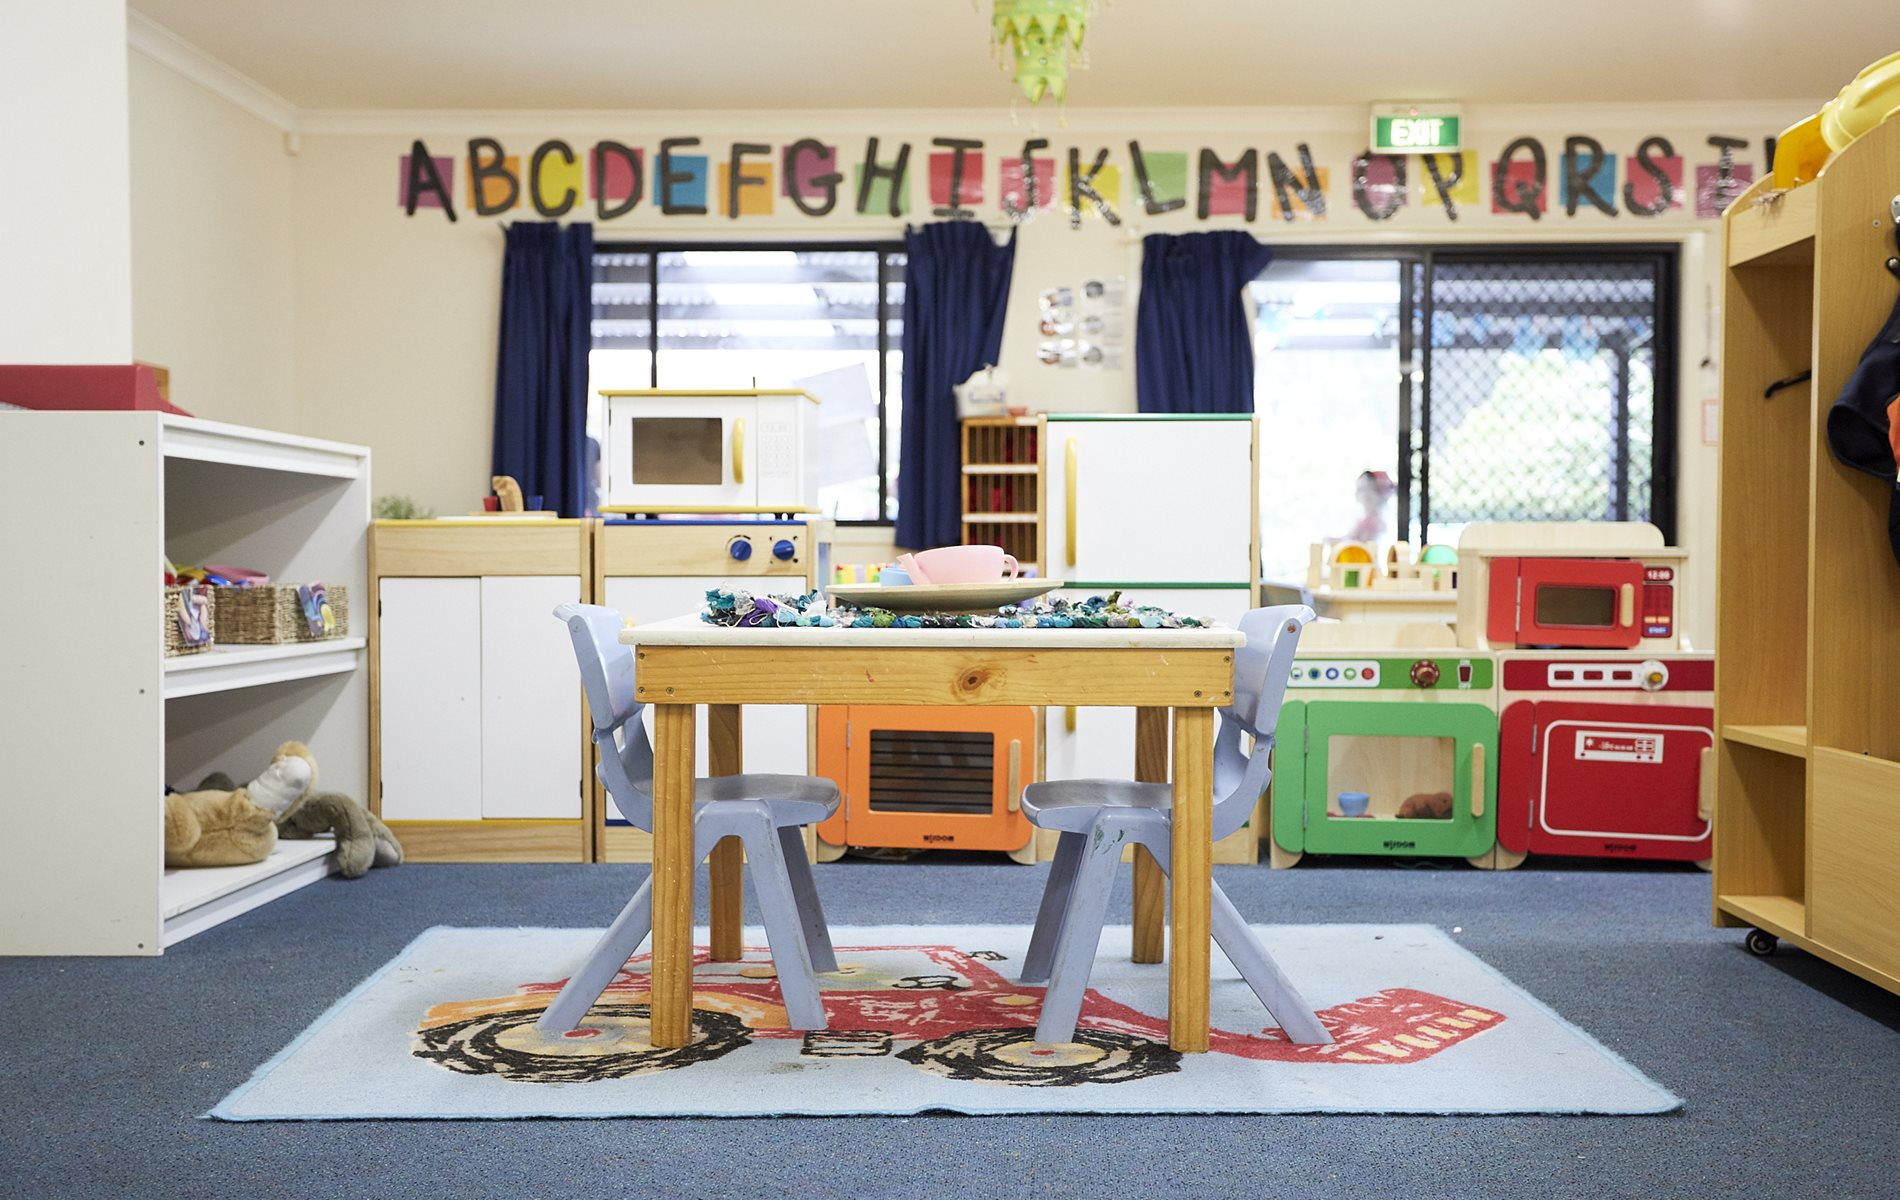 Interior of child care classroom with play kitchenette area